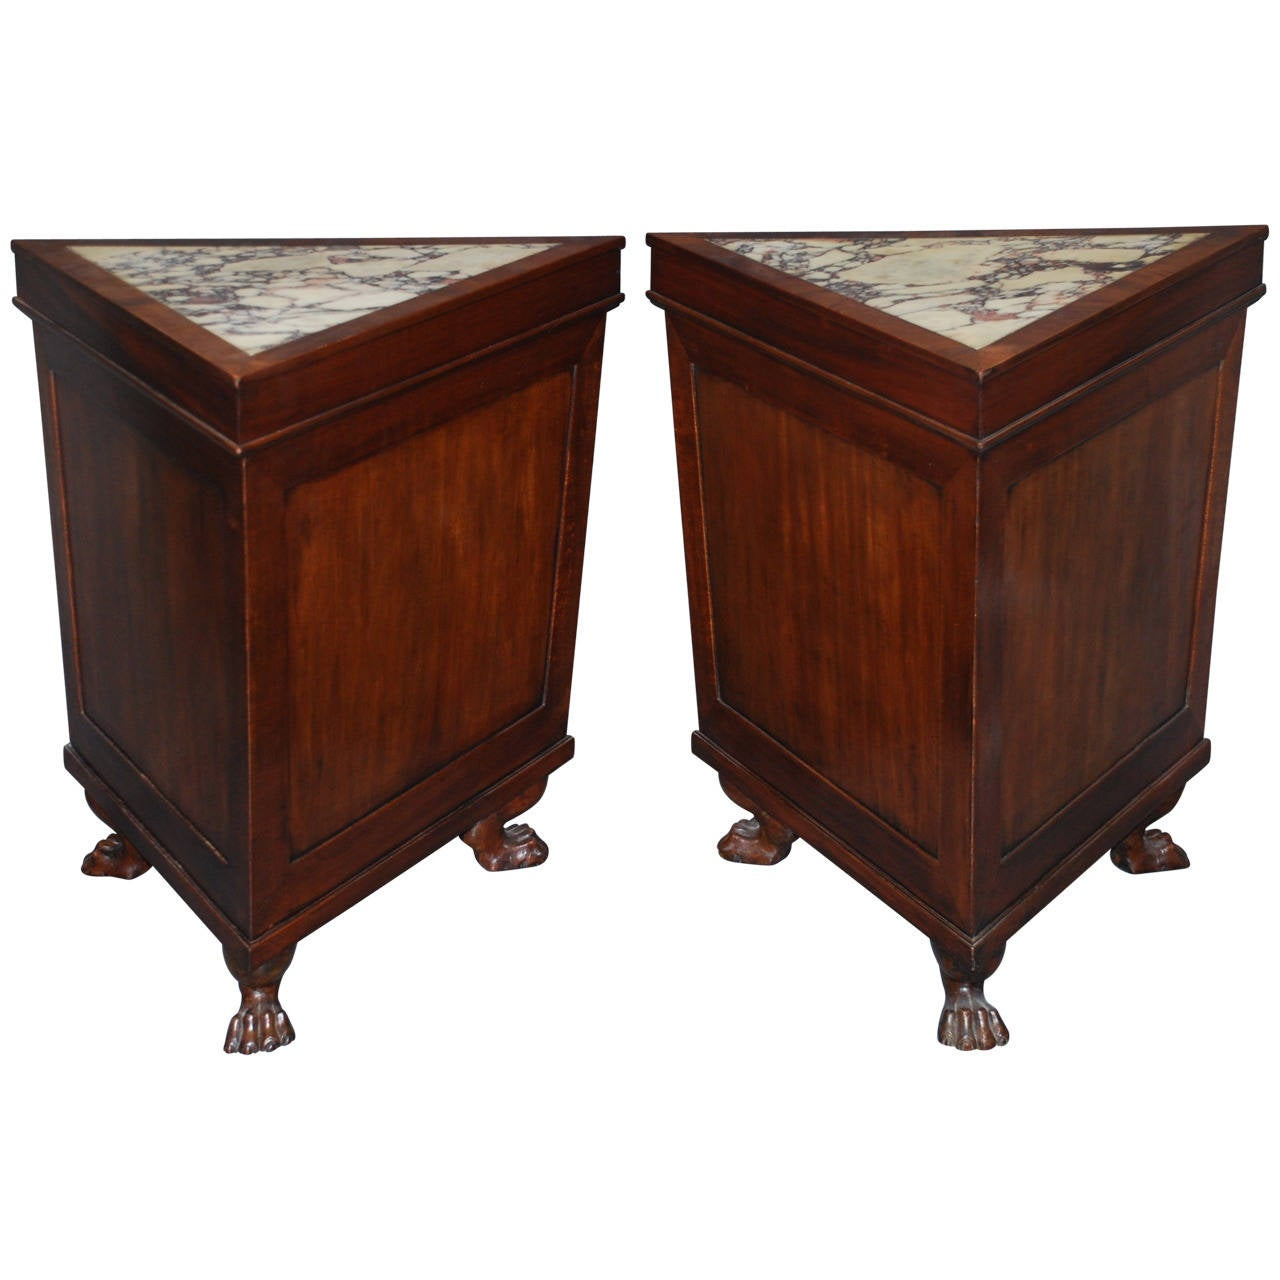 Pair of Italian Marble-Top Side Tables